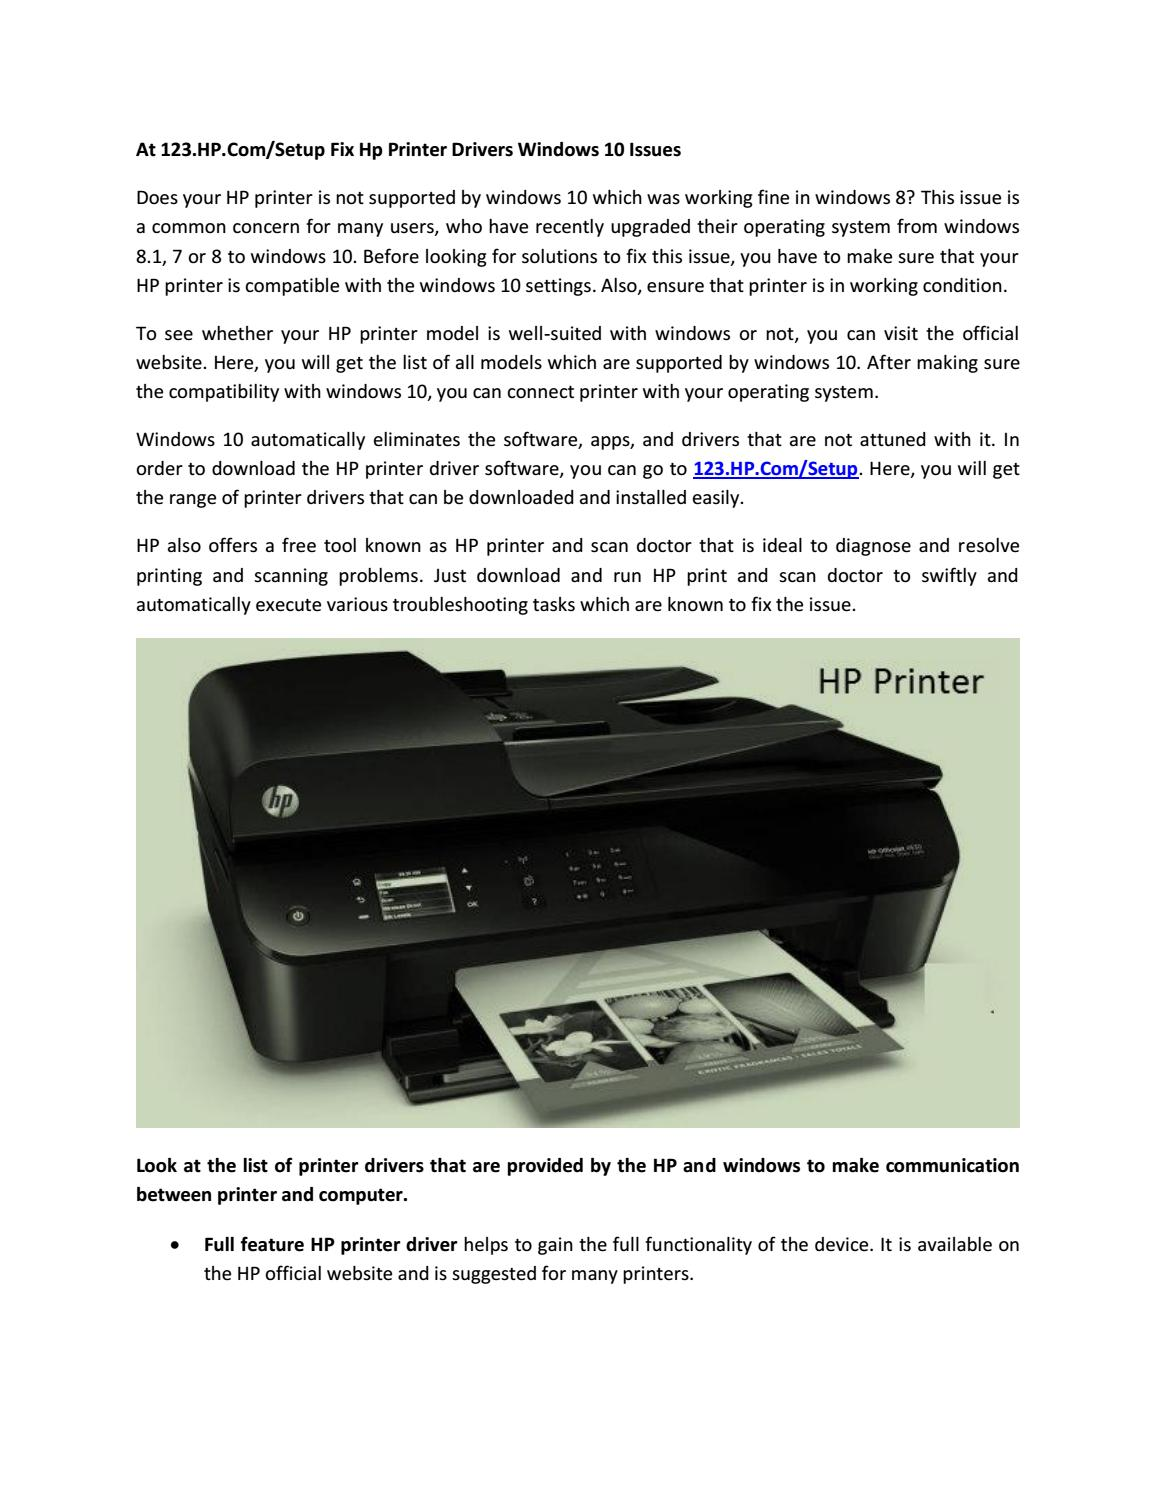 Download latest driver software for your HP printer from 123